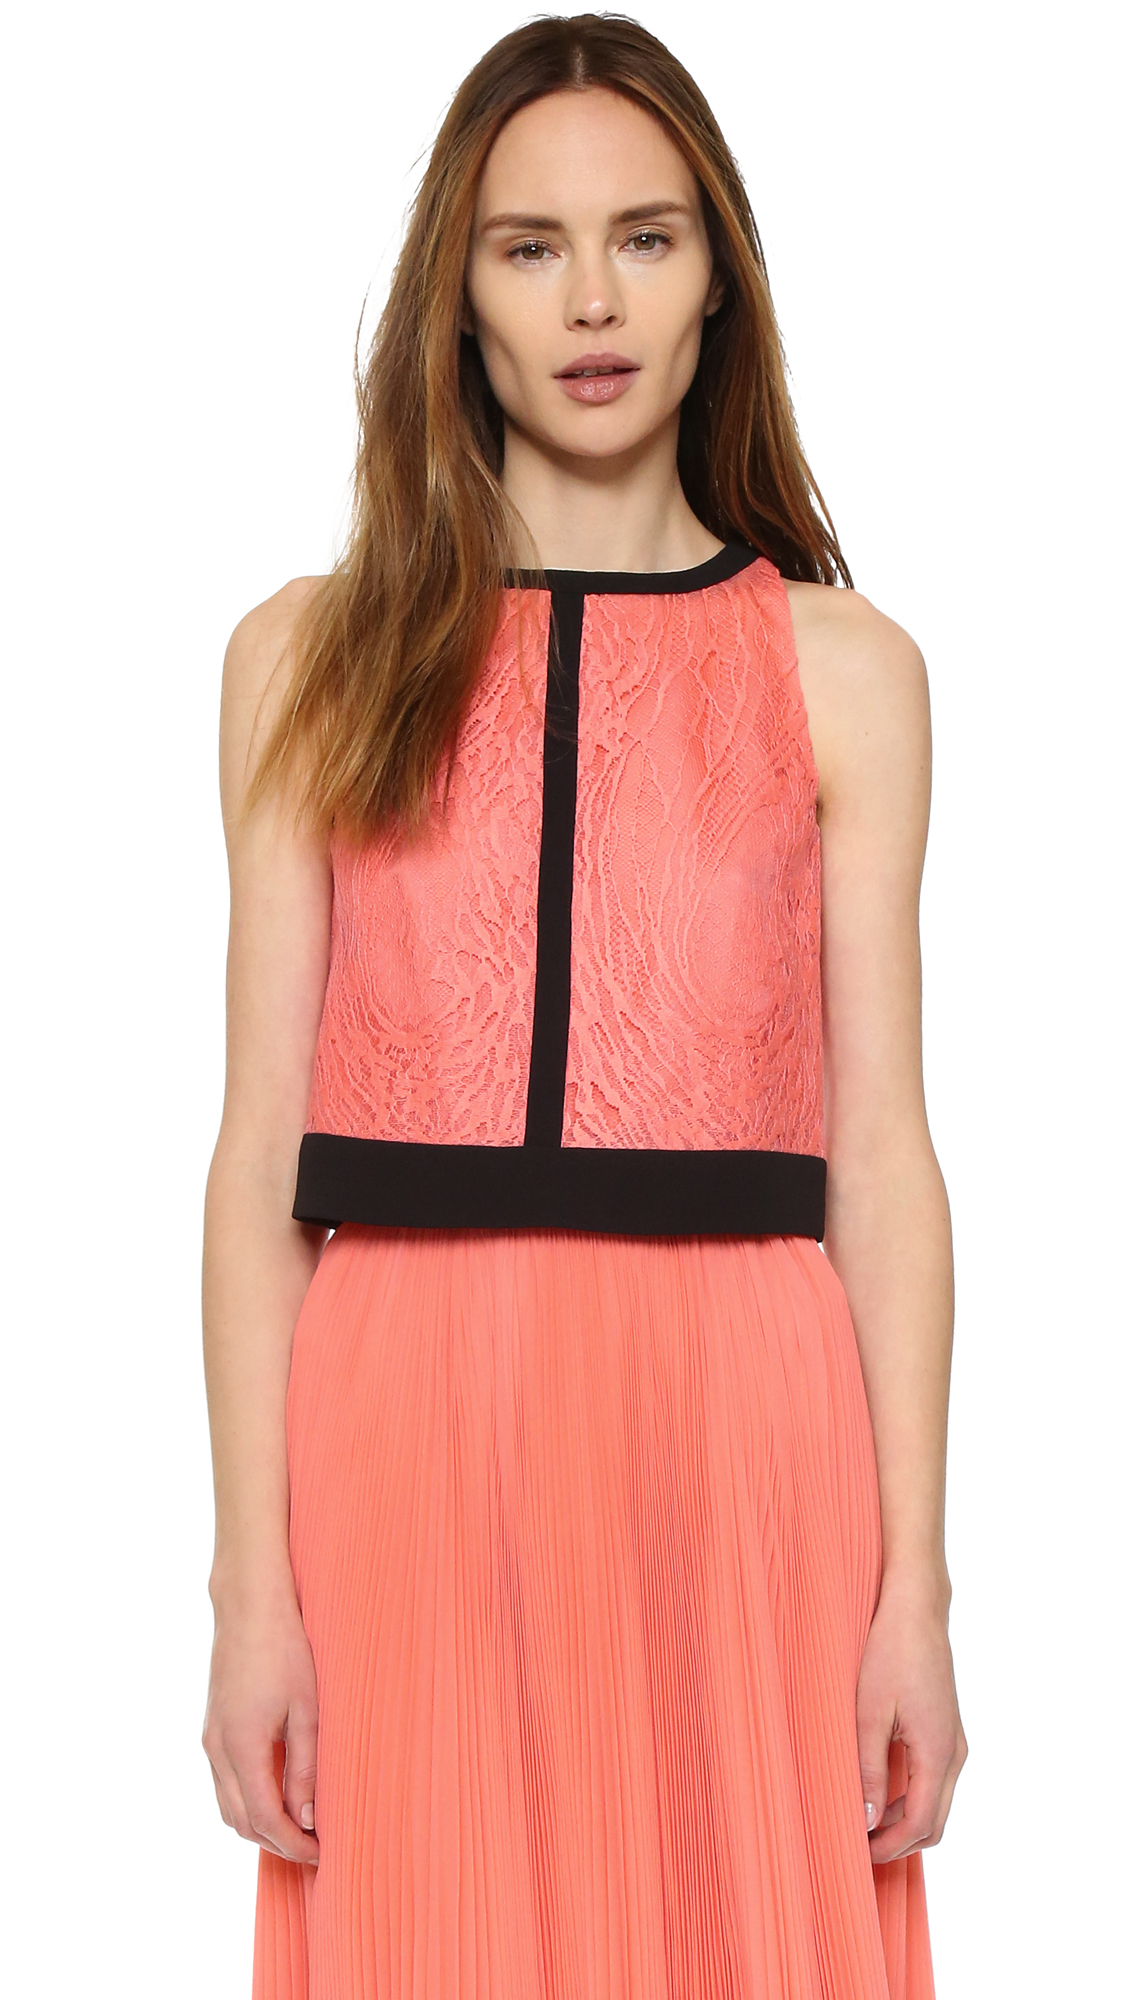 J. Mendel Lace Crop Top - Coral